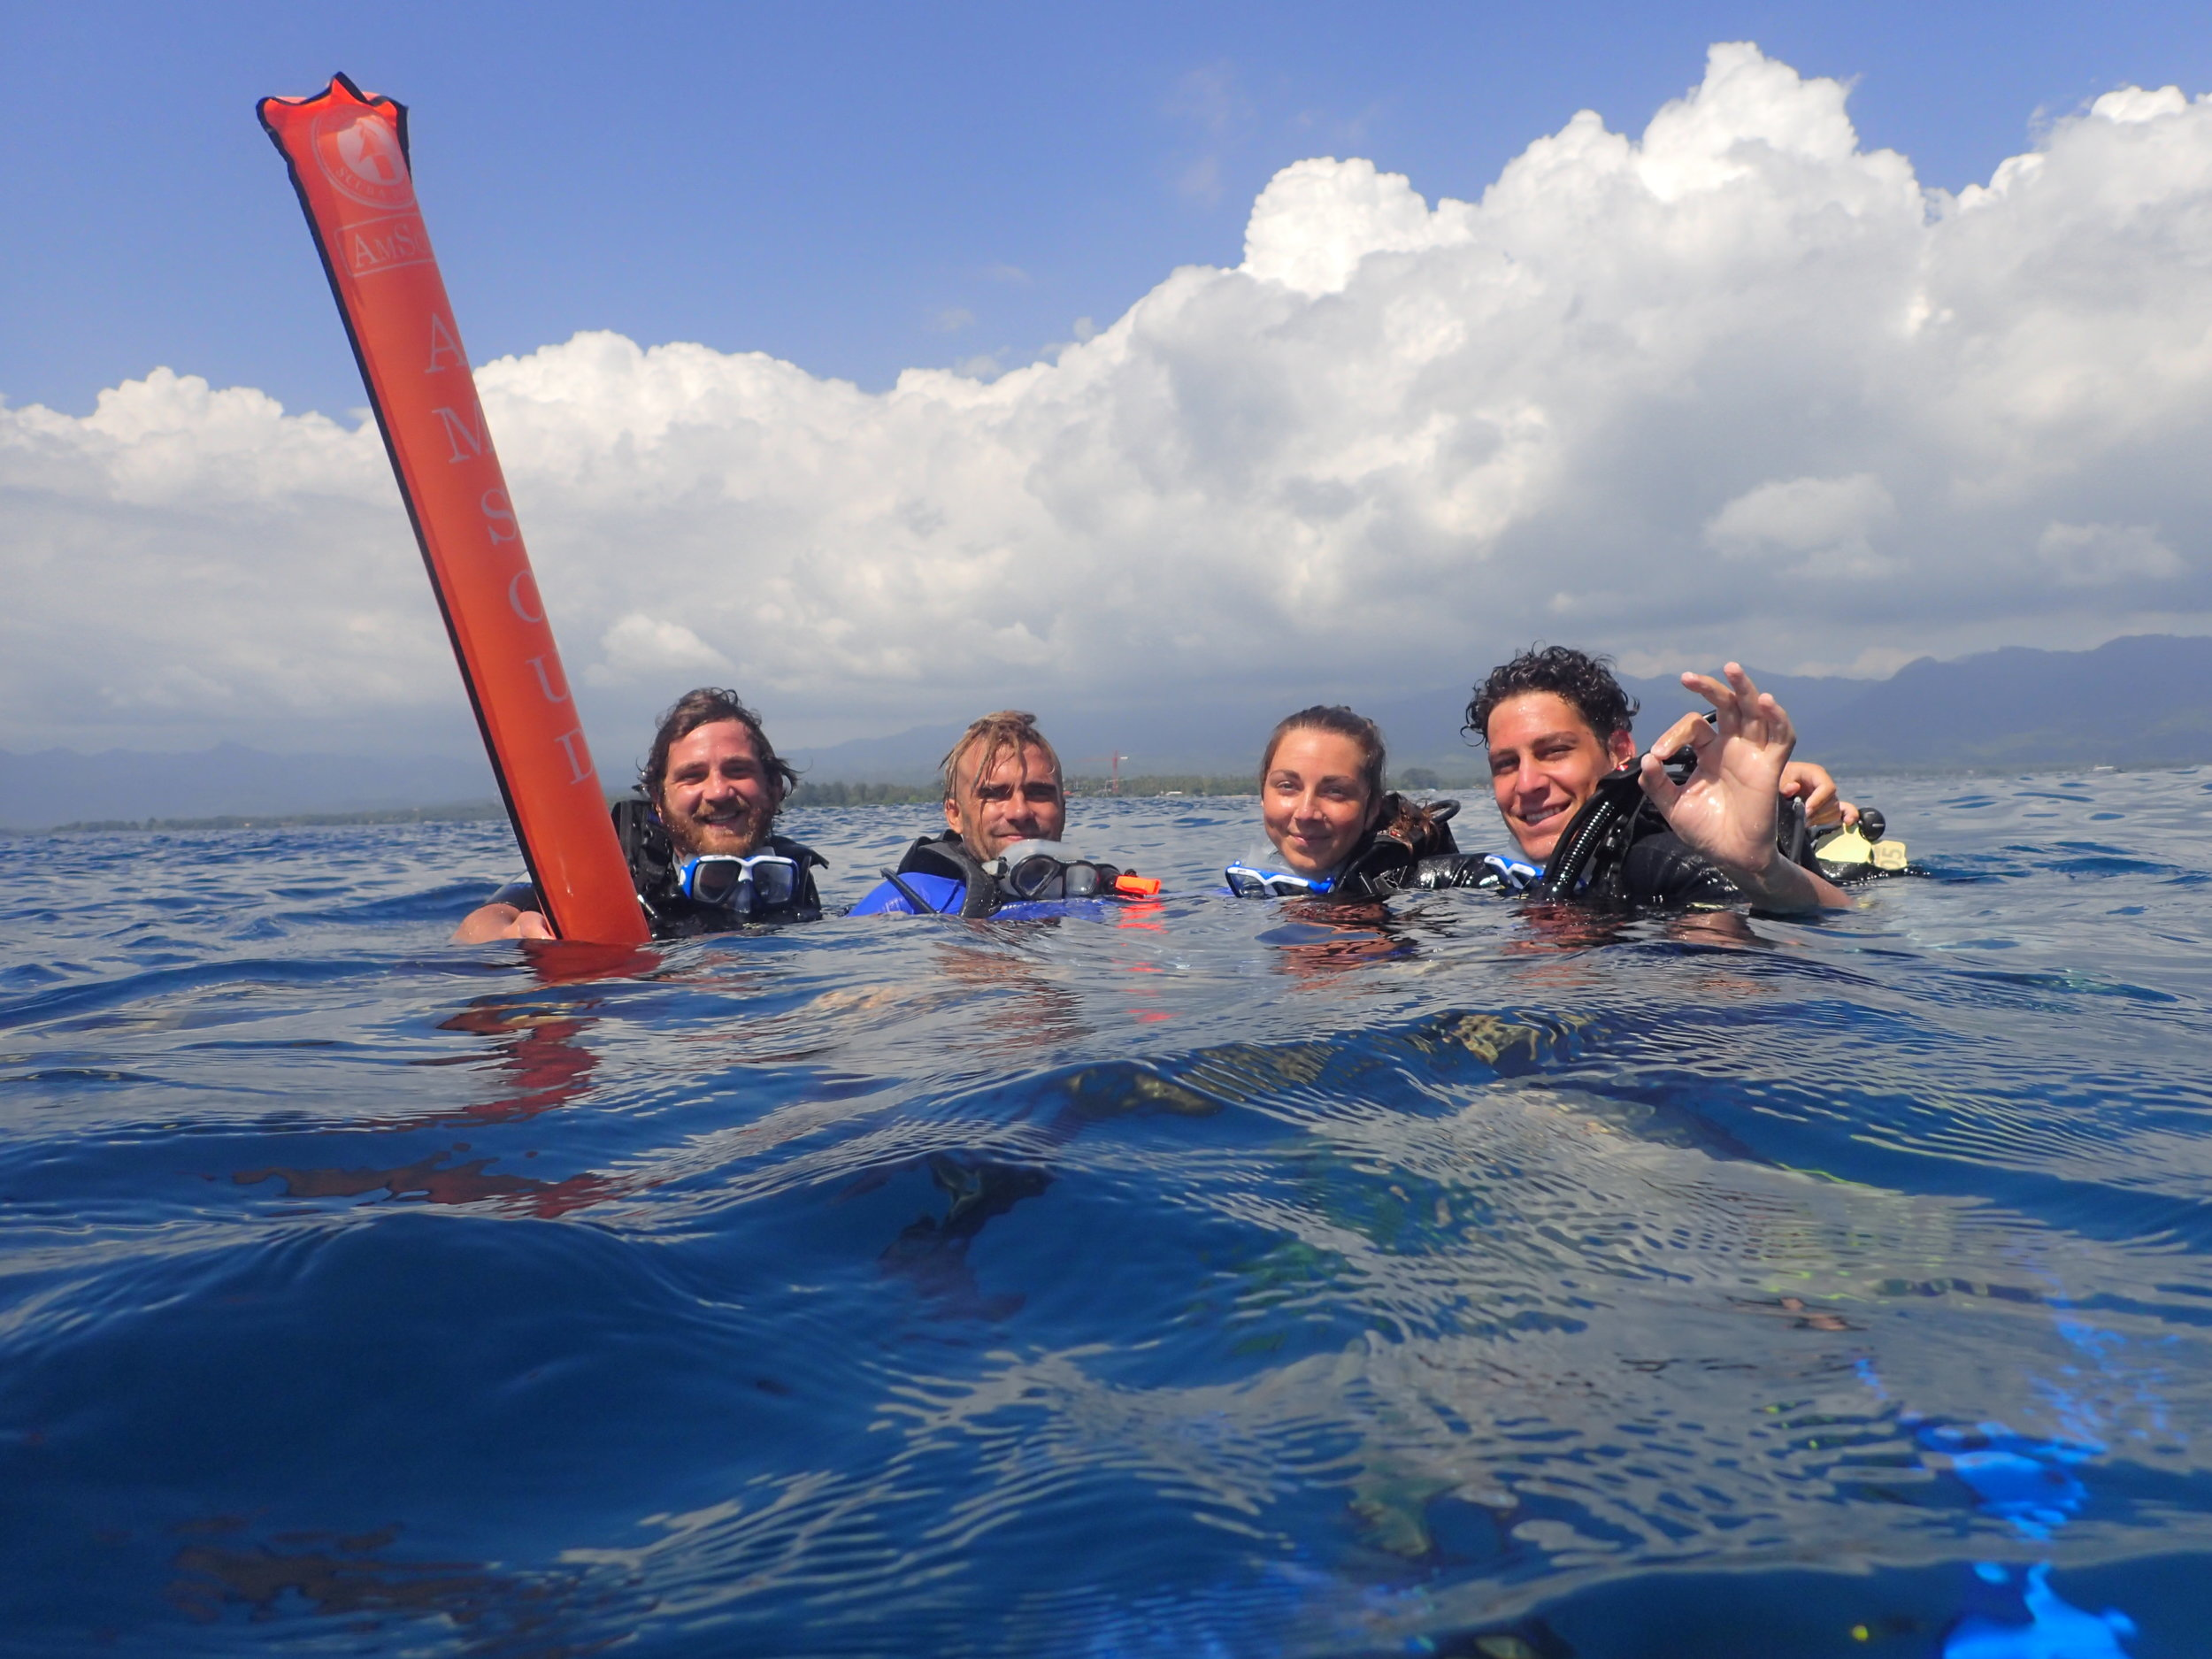 I took this picture showing the joy after almost an hour underwater on a discover scuba